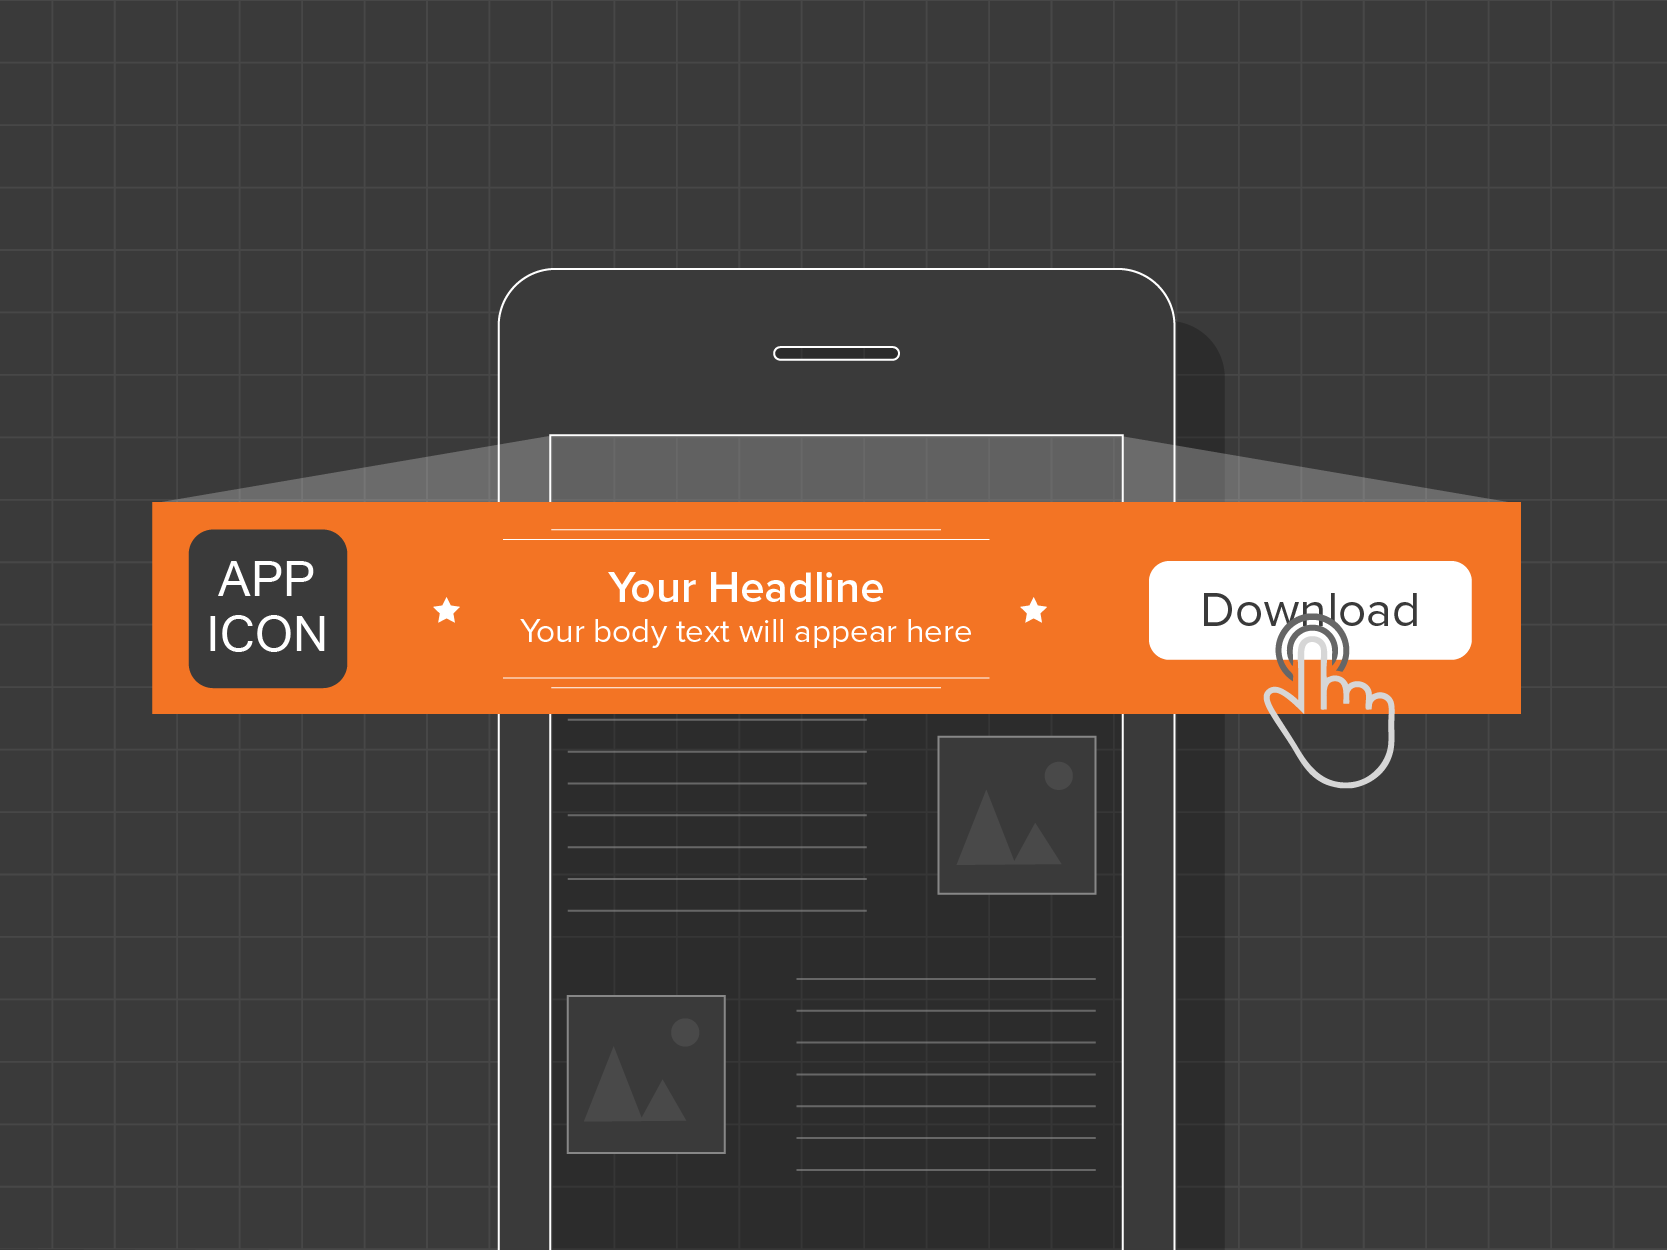 12 rules to design app banner and make your banner a hit!